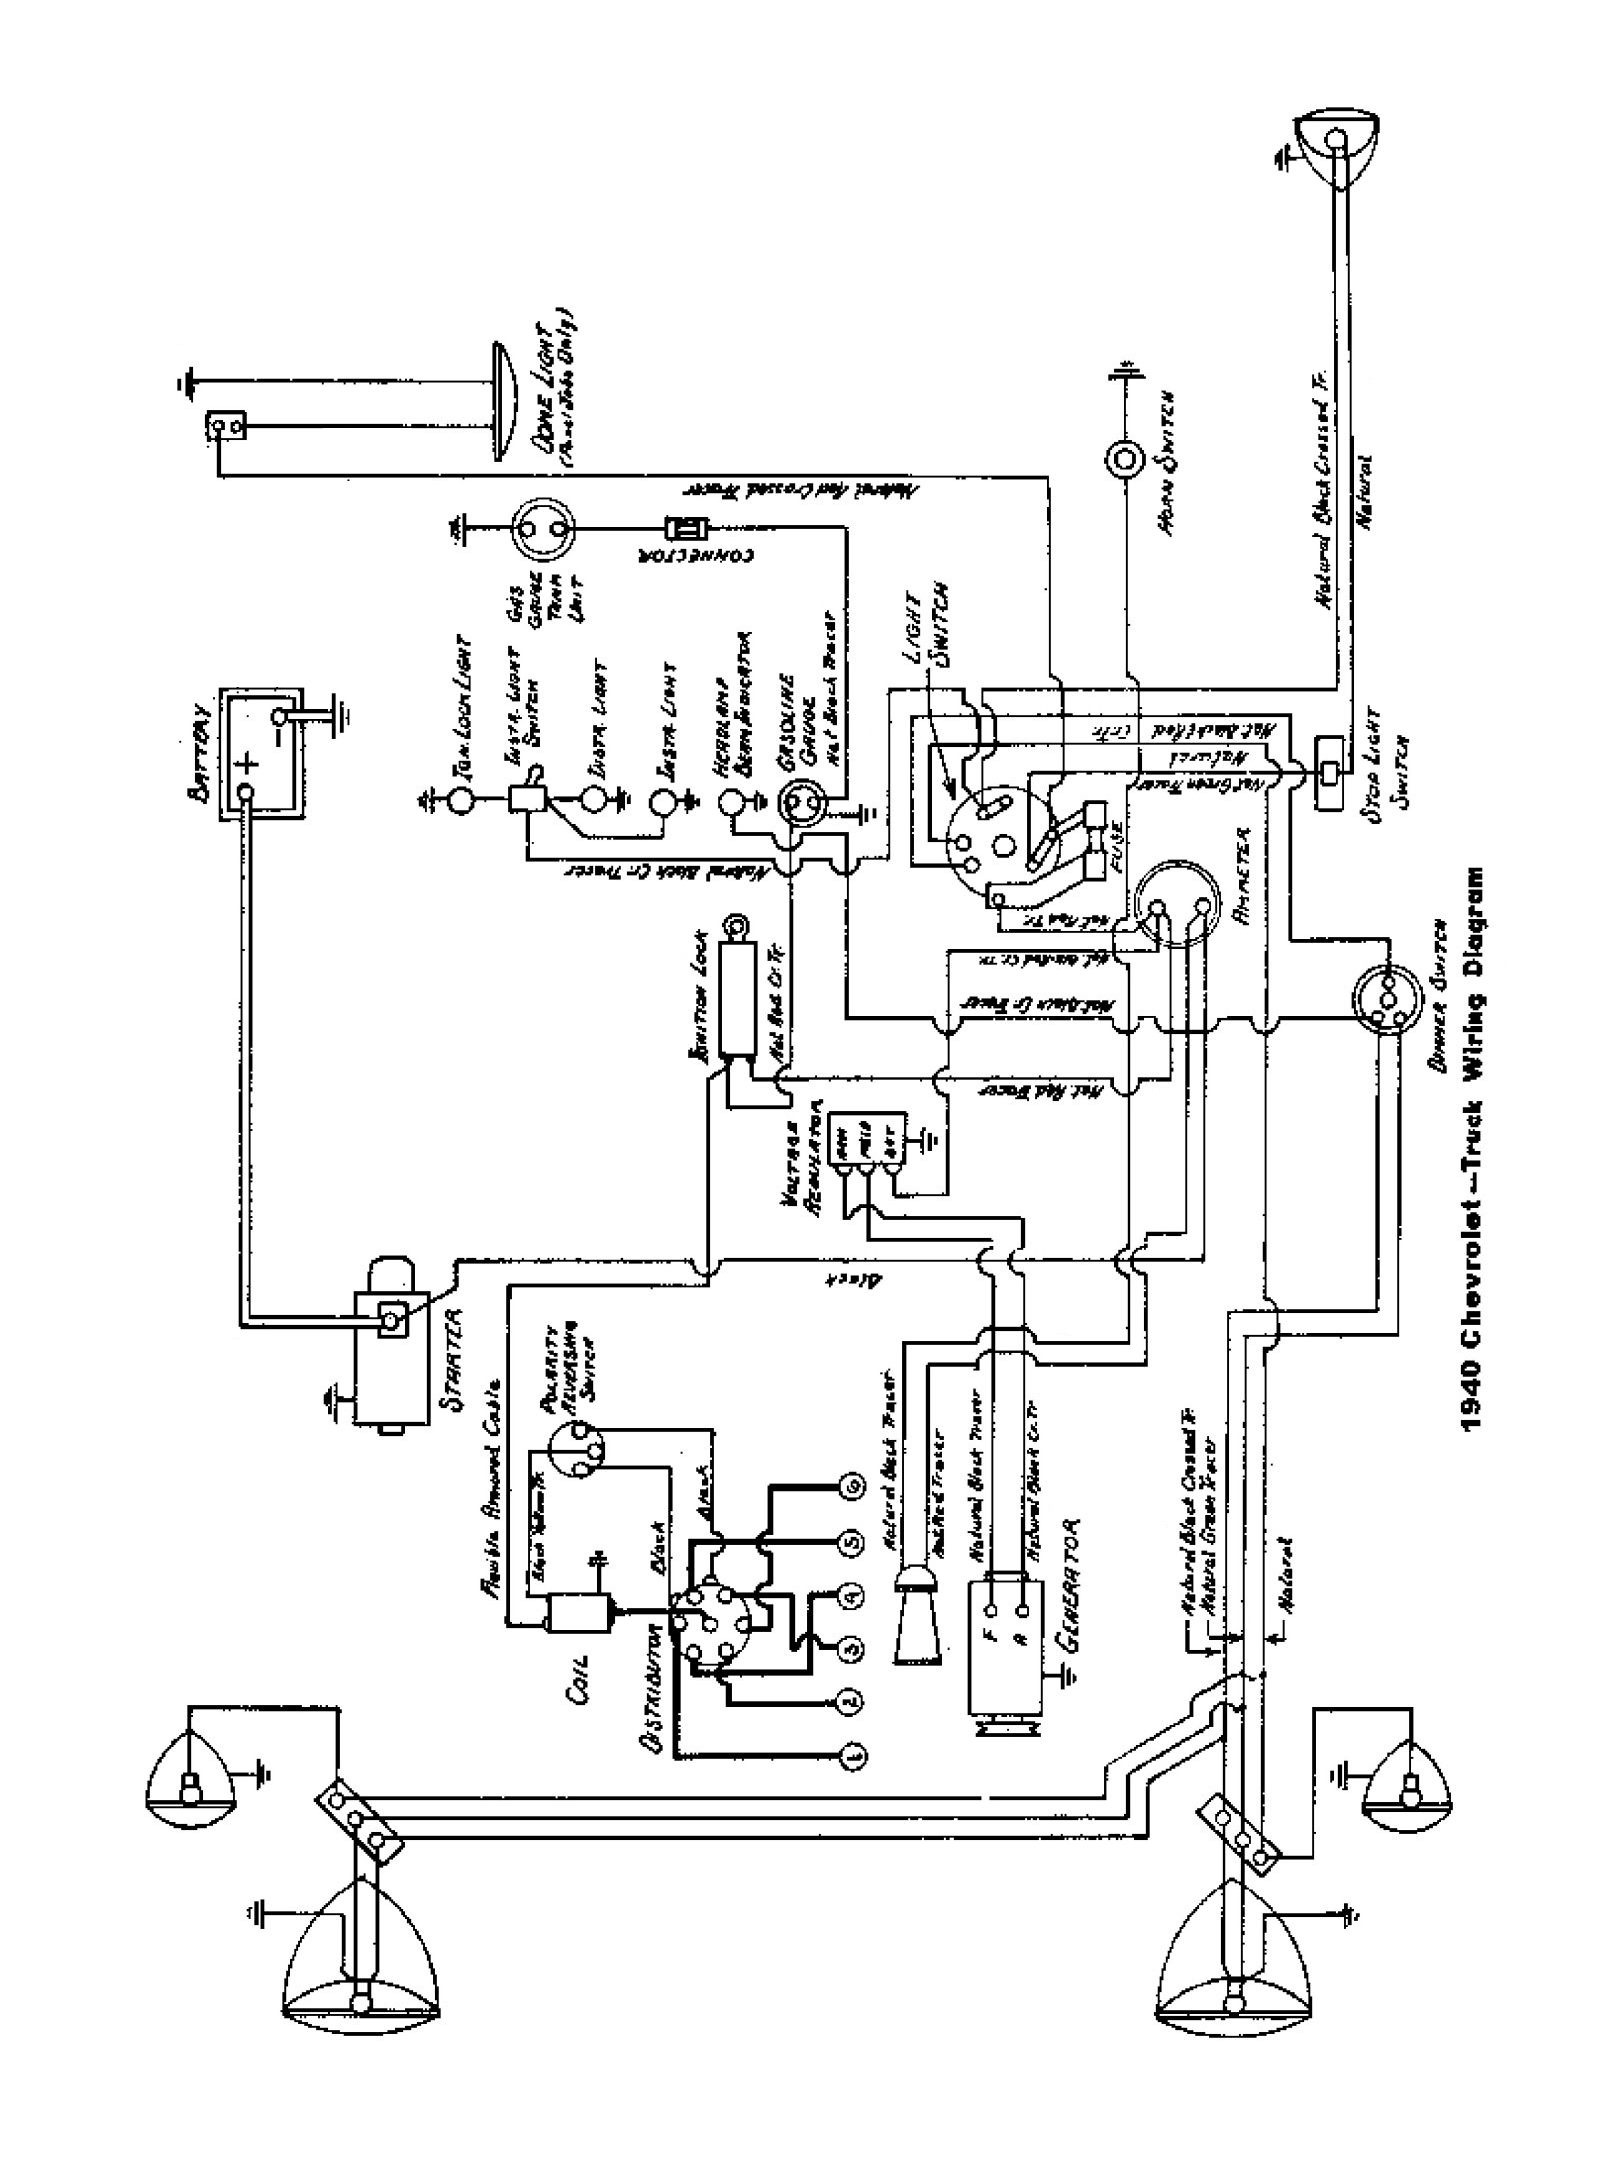 1953 Gm Ignition Wiring - Wiring Diagram All trite-about -  trite-about.huevoprint.itHuevoprint